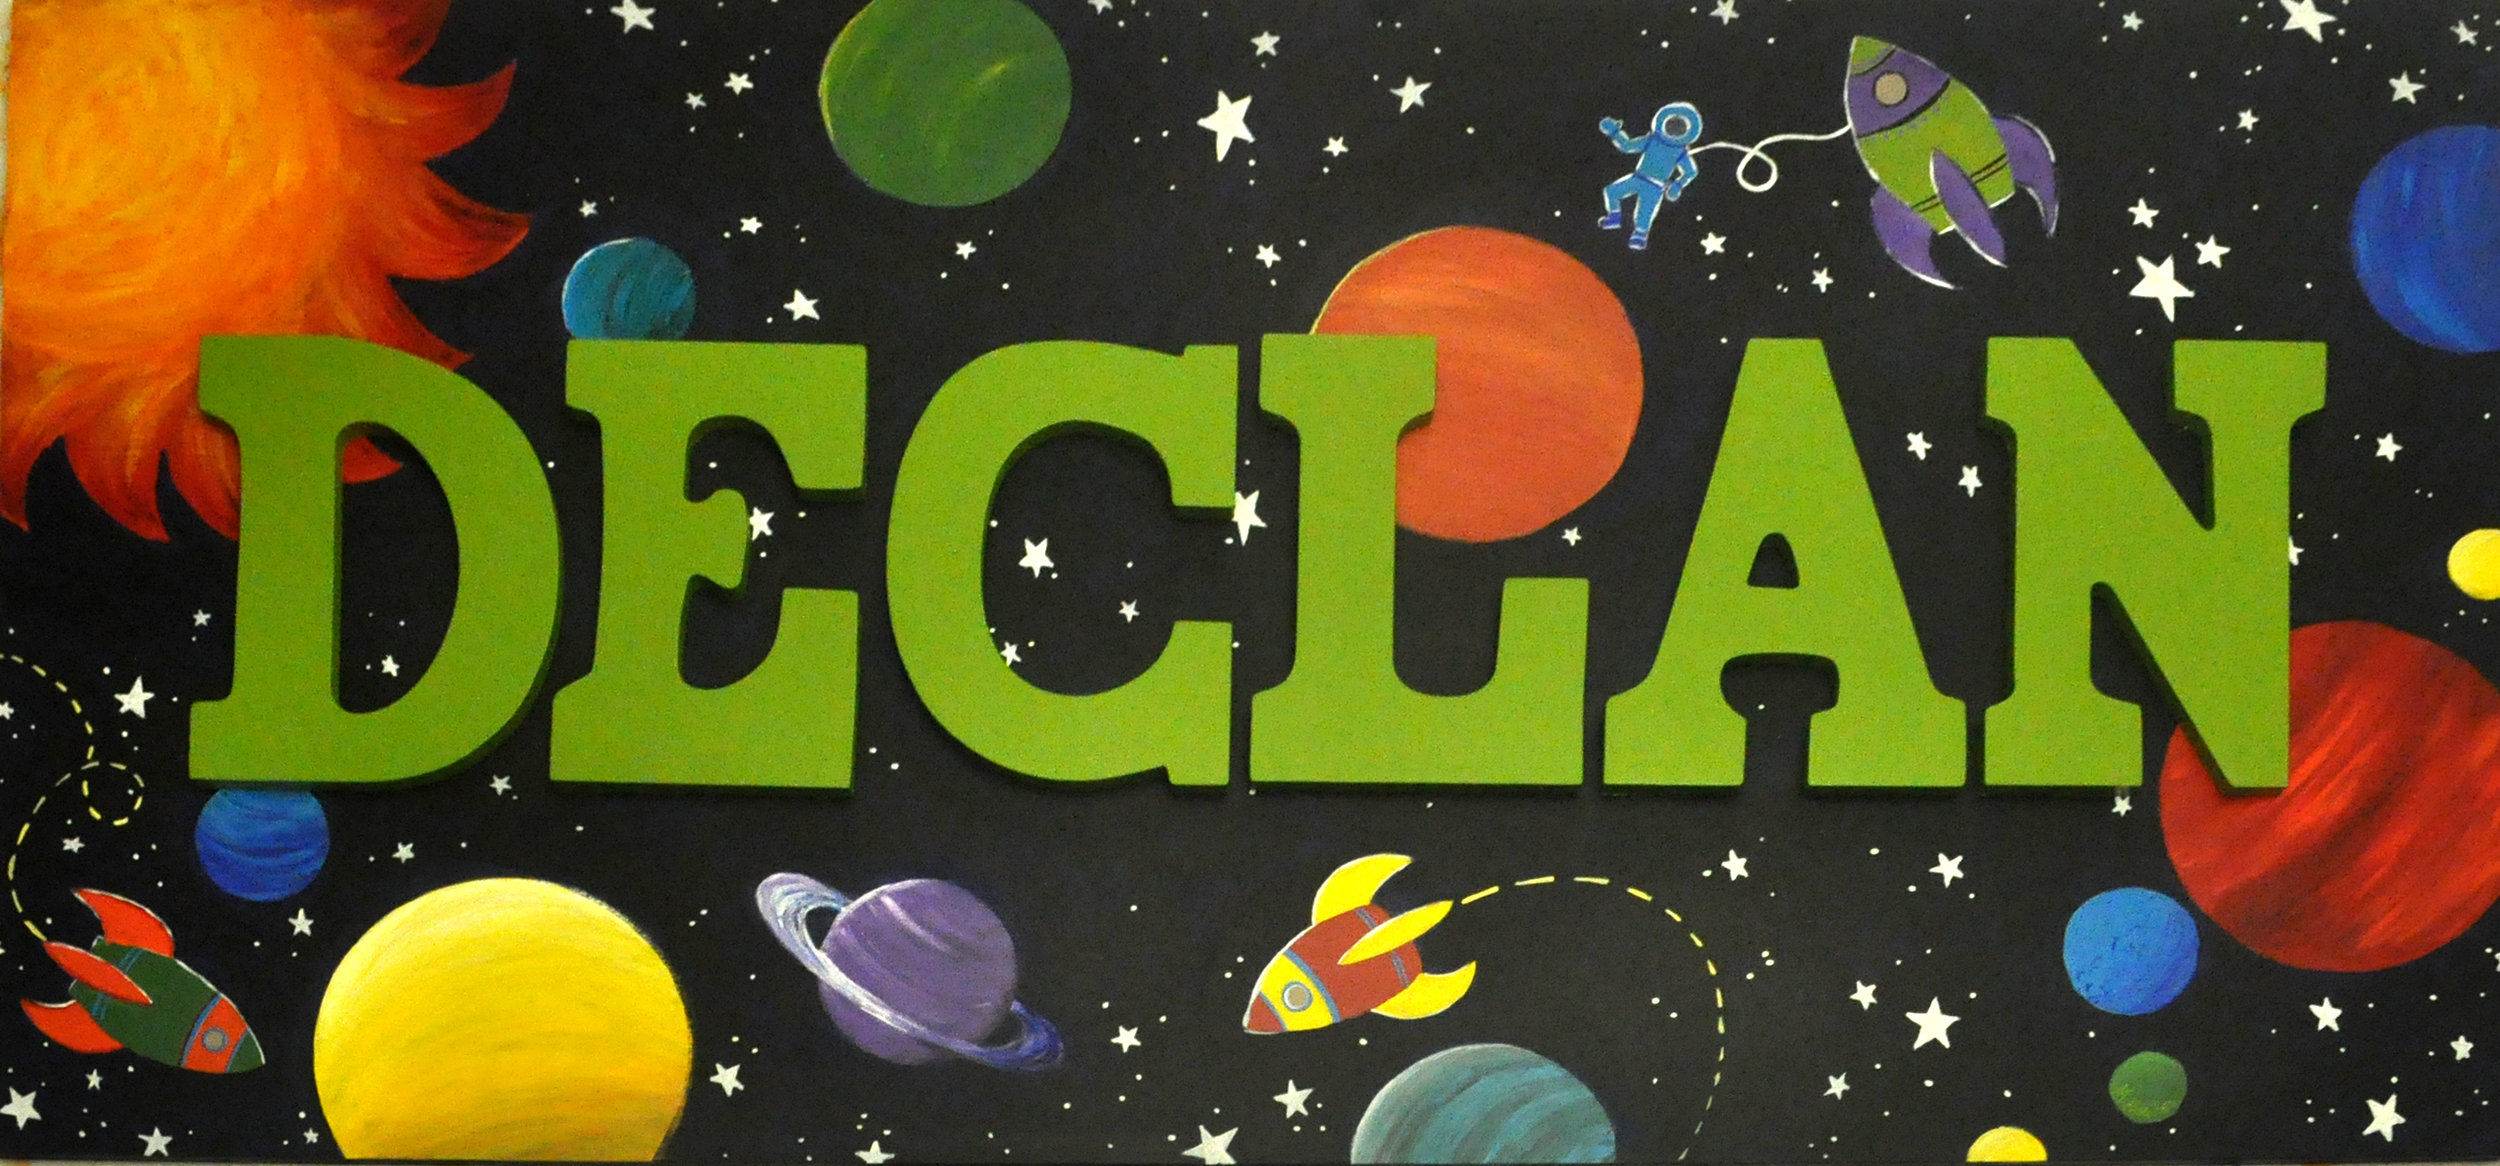 Space Art for Declan, acrylic on board, 2'x4'